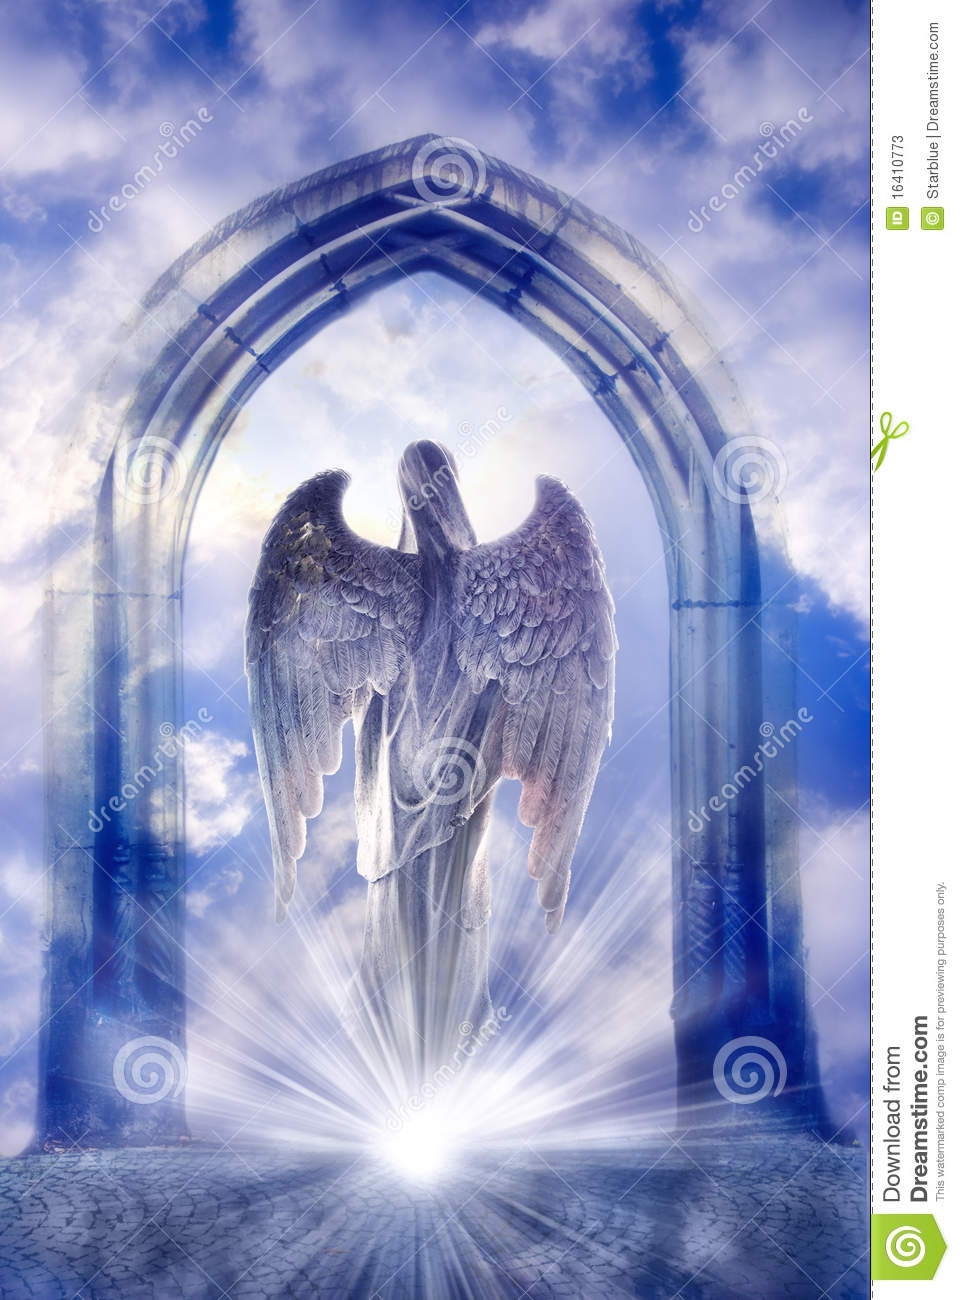 Angel stock image. Image of religious, heaven, guardian ...